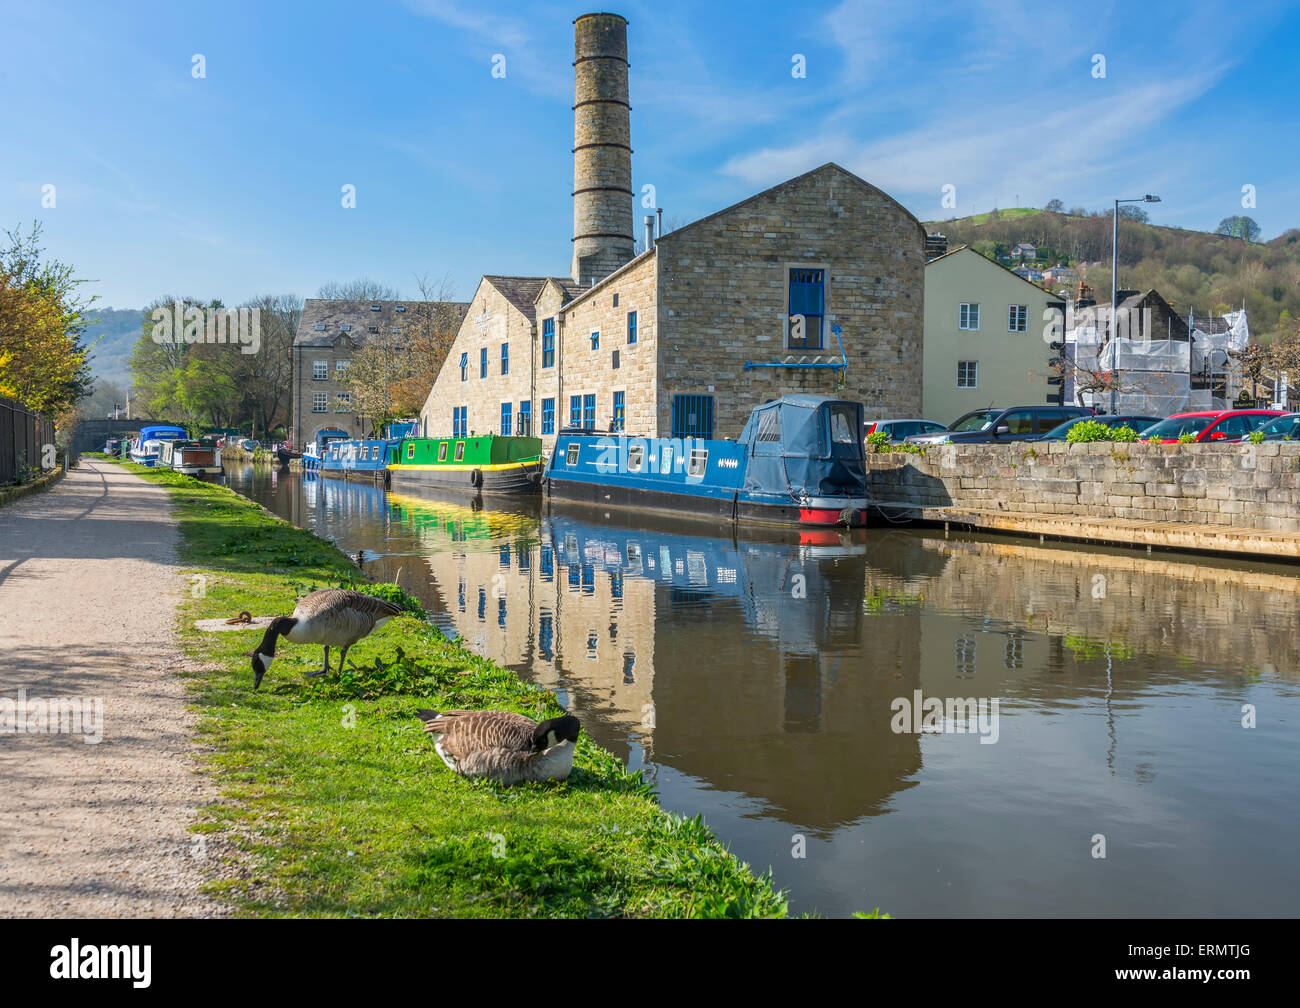 The pretty tourist town of Hebden Bridge in the South Pennine region of West Yorkshire - Stock Image